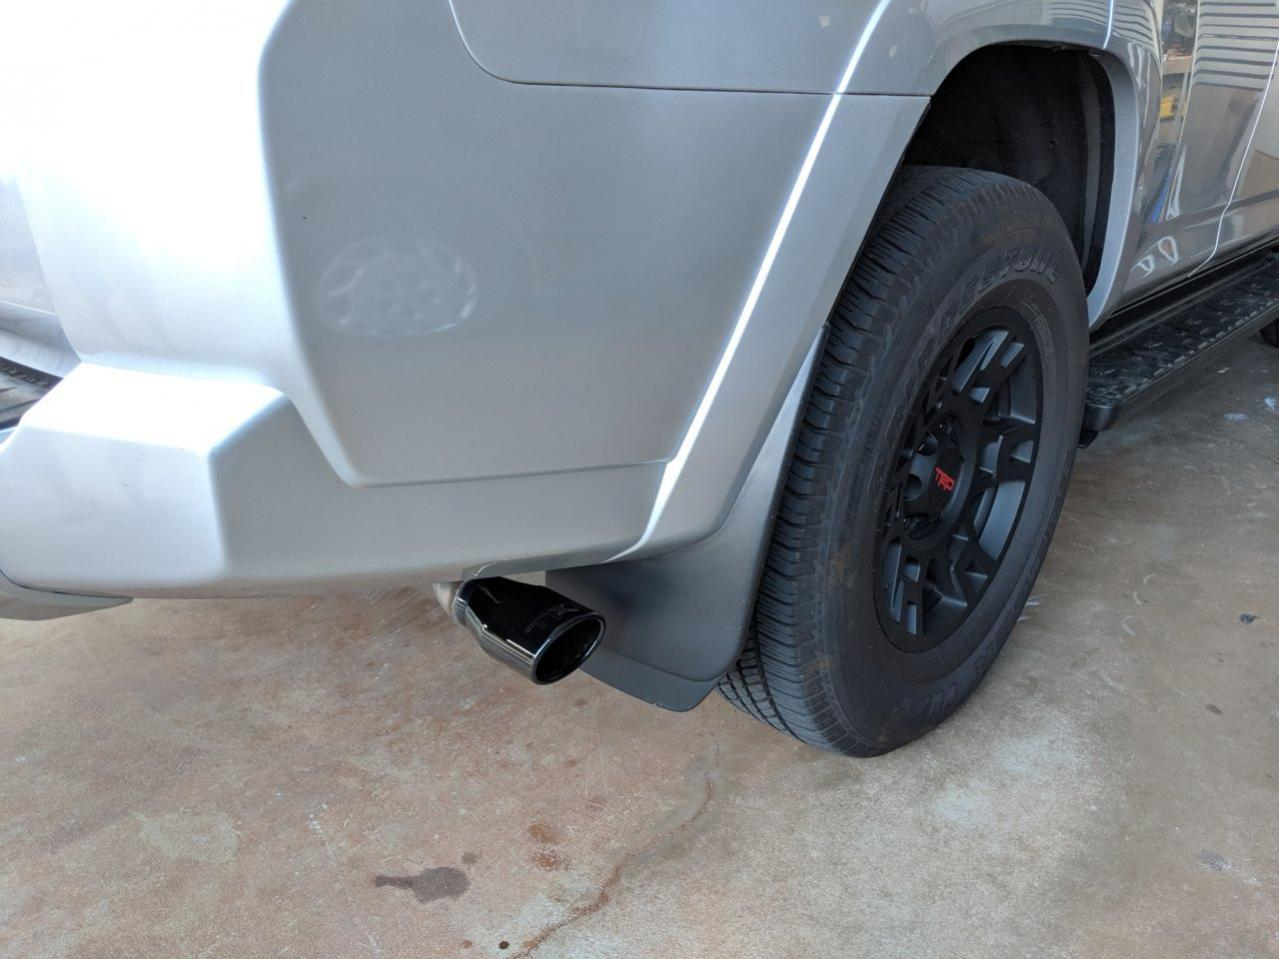 TRD Exhaust - Available in 2020 M.Y.-img_20190829_181312-jpg